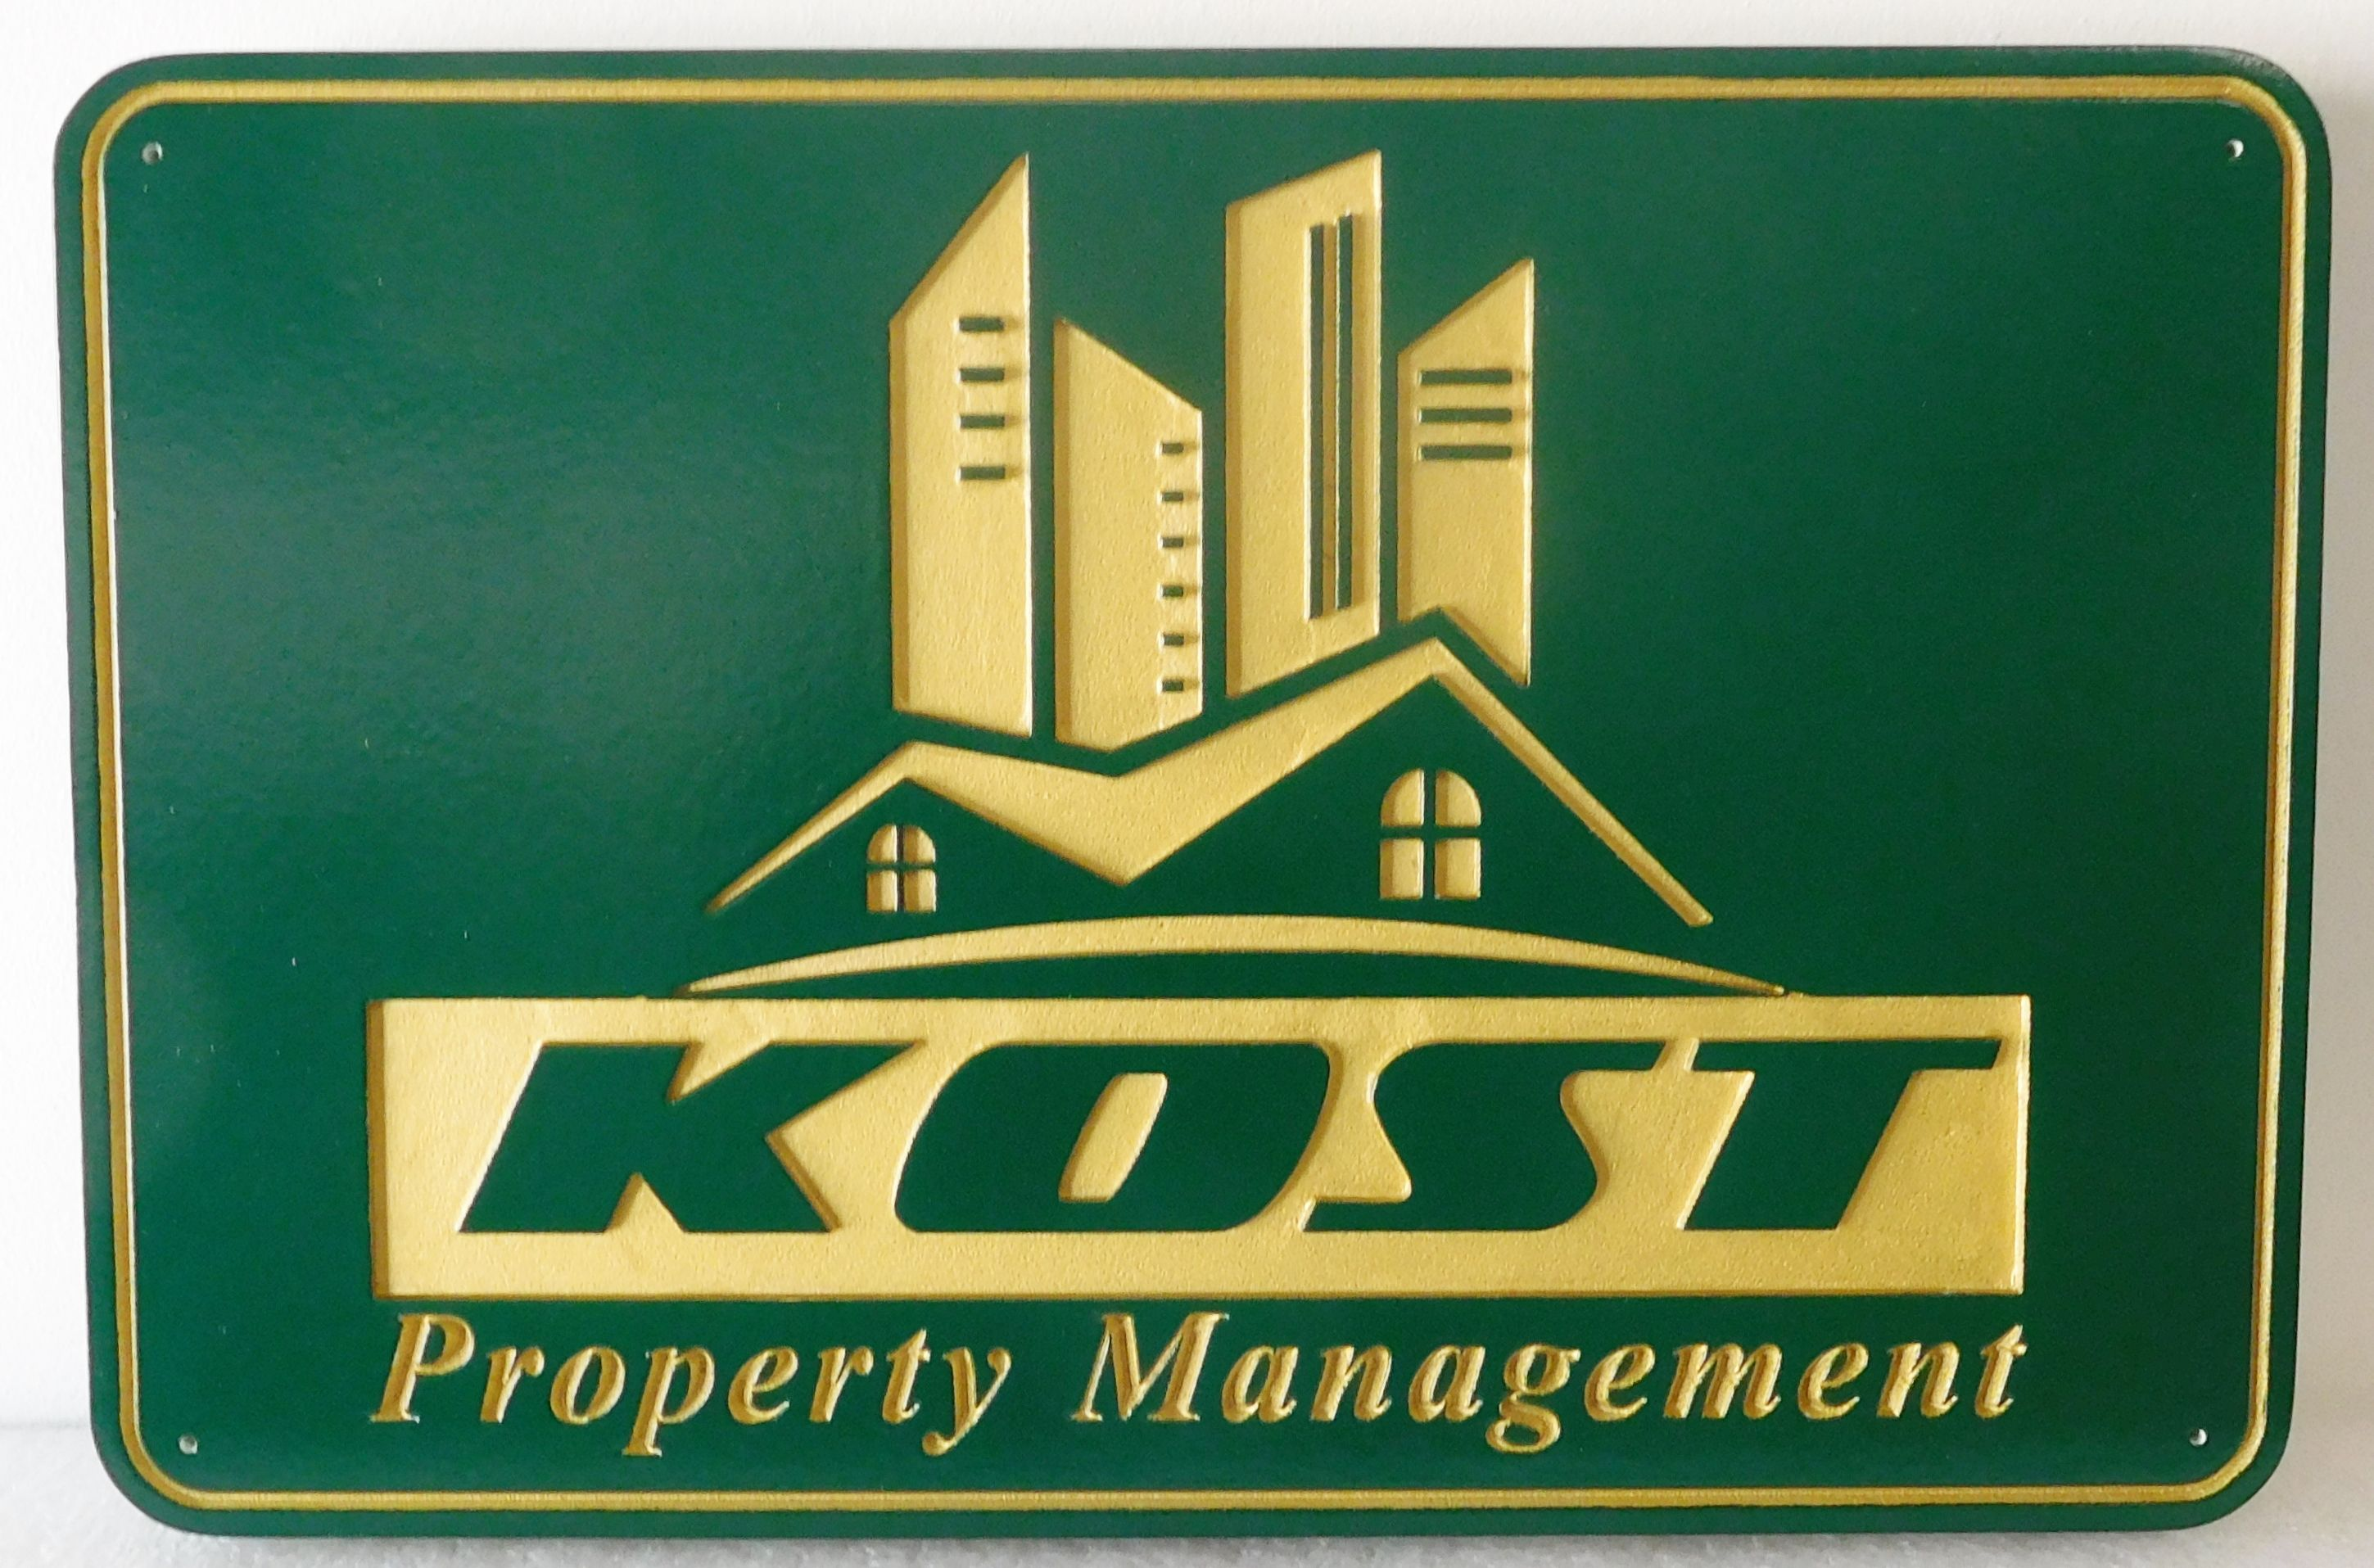 C12326 -   Engraved HDU Sign for Property Management Company, with Recessed Art of Buildings